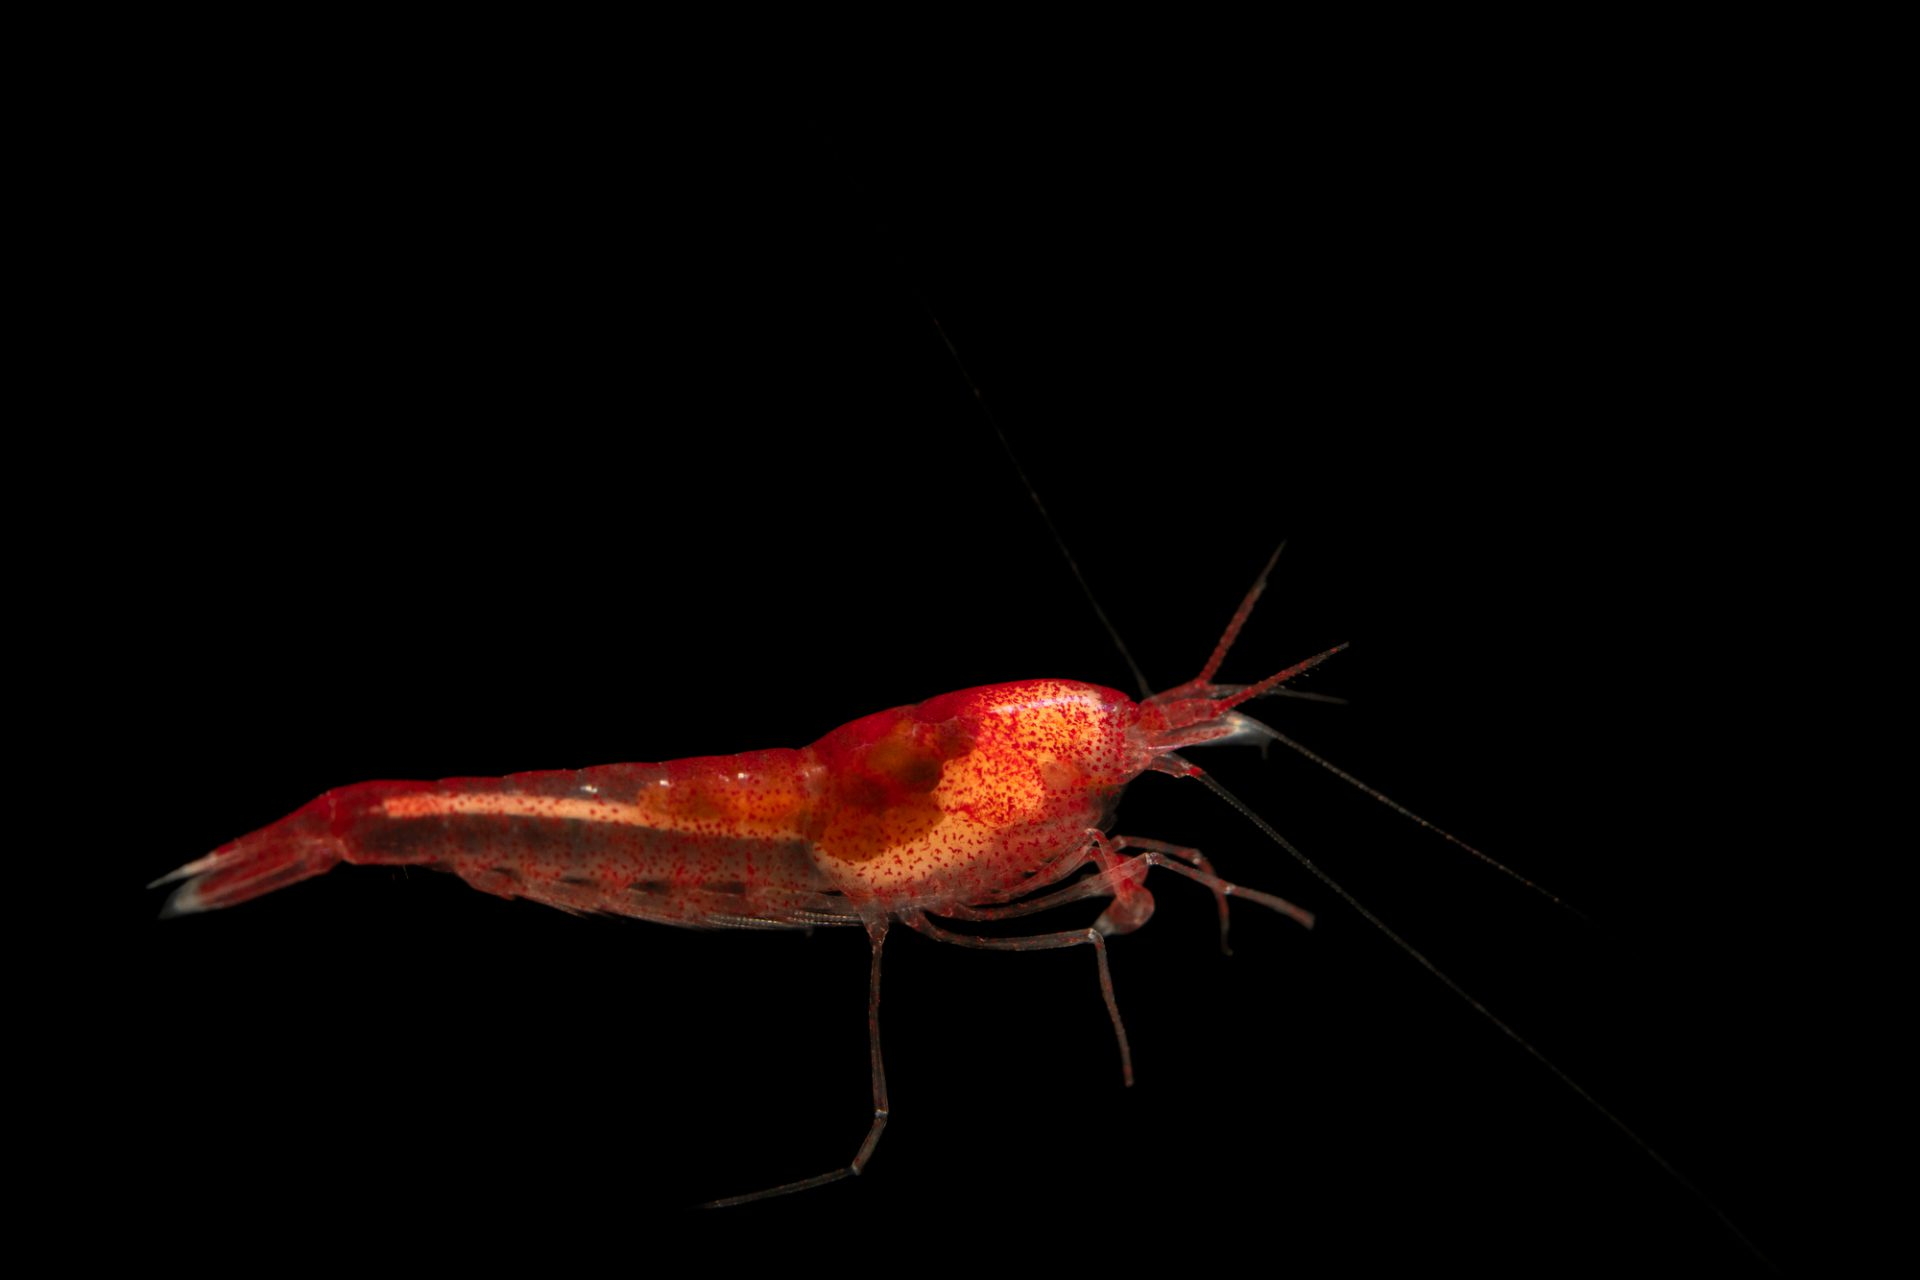 Photo: An akialine shrimp (Halocaradina rubra) at the Auburn University Natural History Museum.